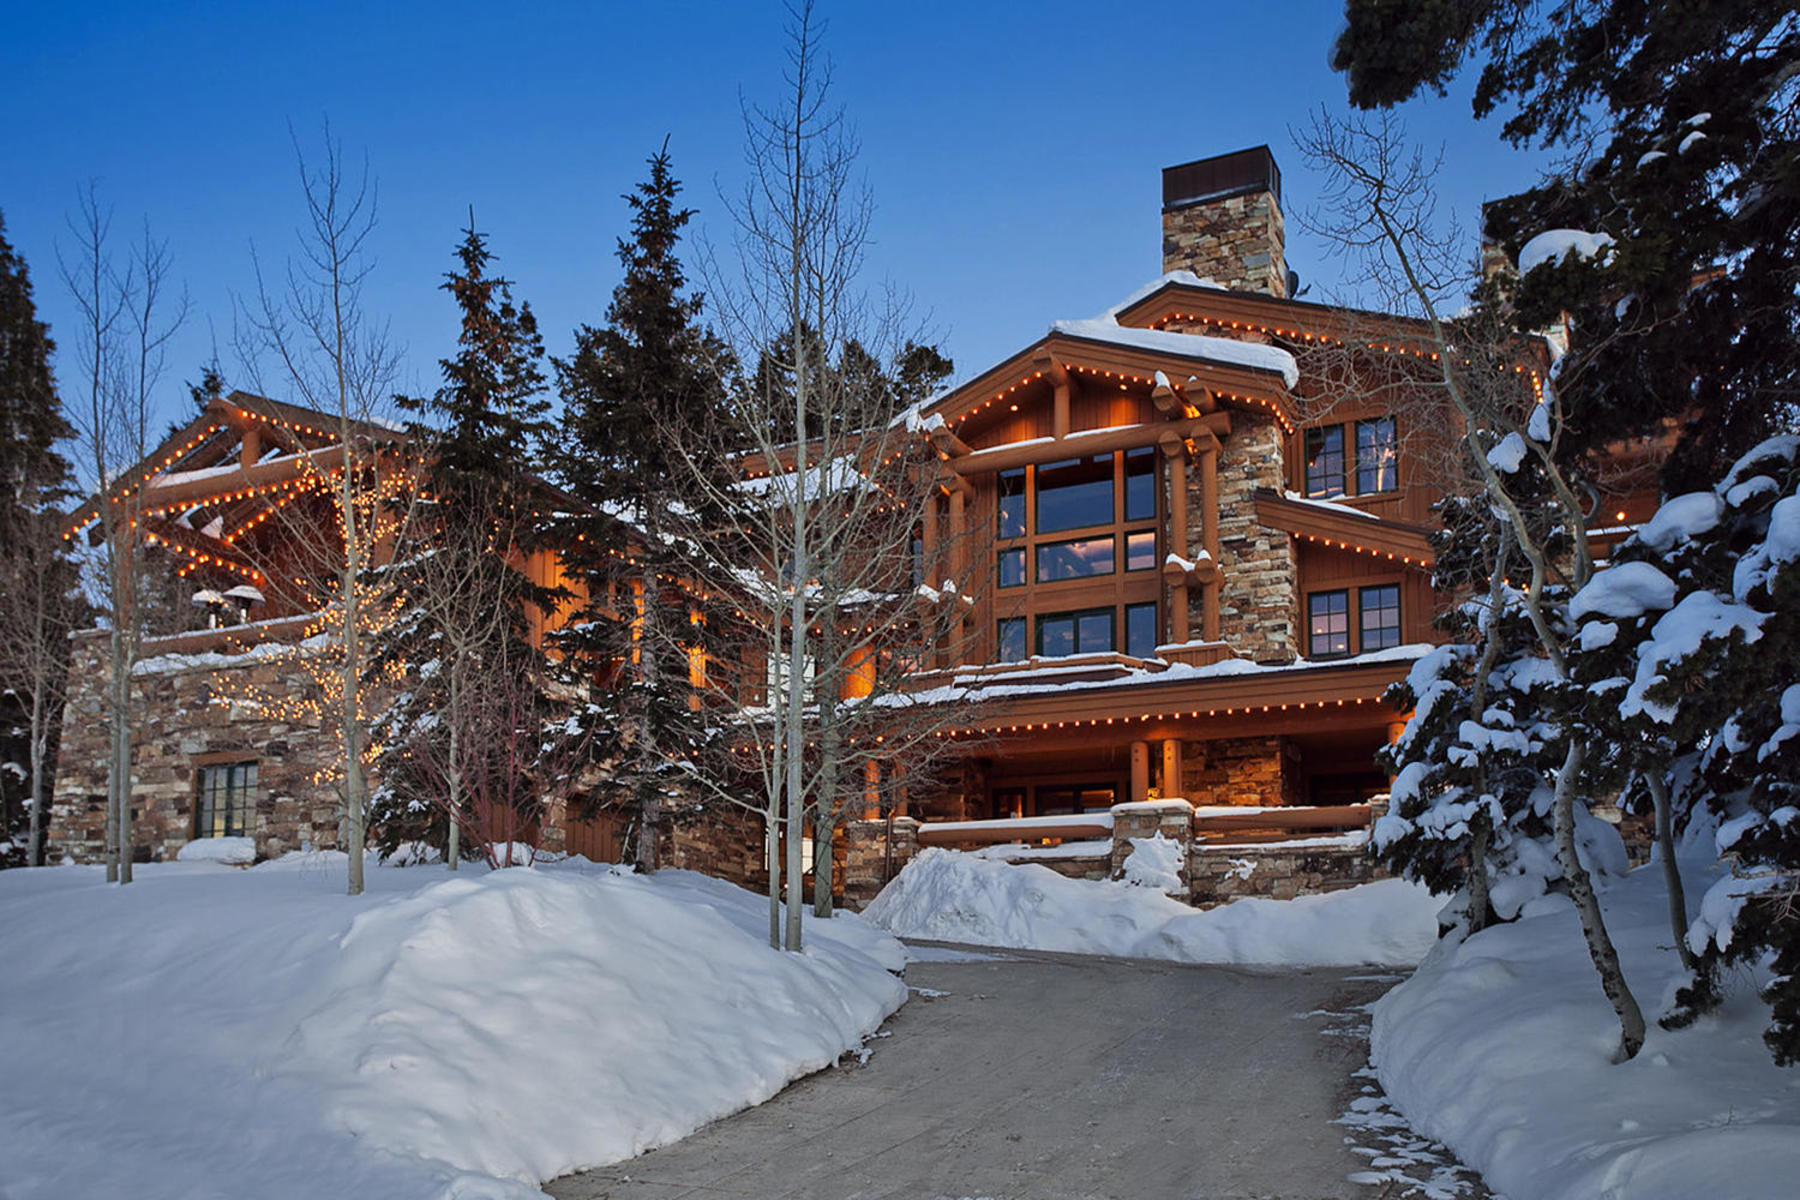 Single Family Home for Sale at Magnificent Bald Eagle Ski Lodge Home 7831 Hawk Ct Park City, Utah, 84060 United States